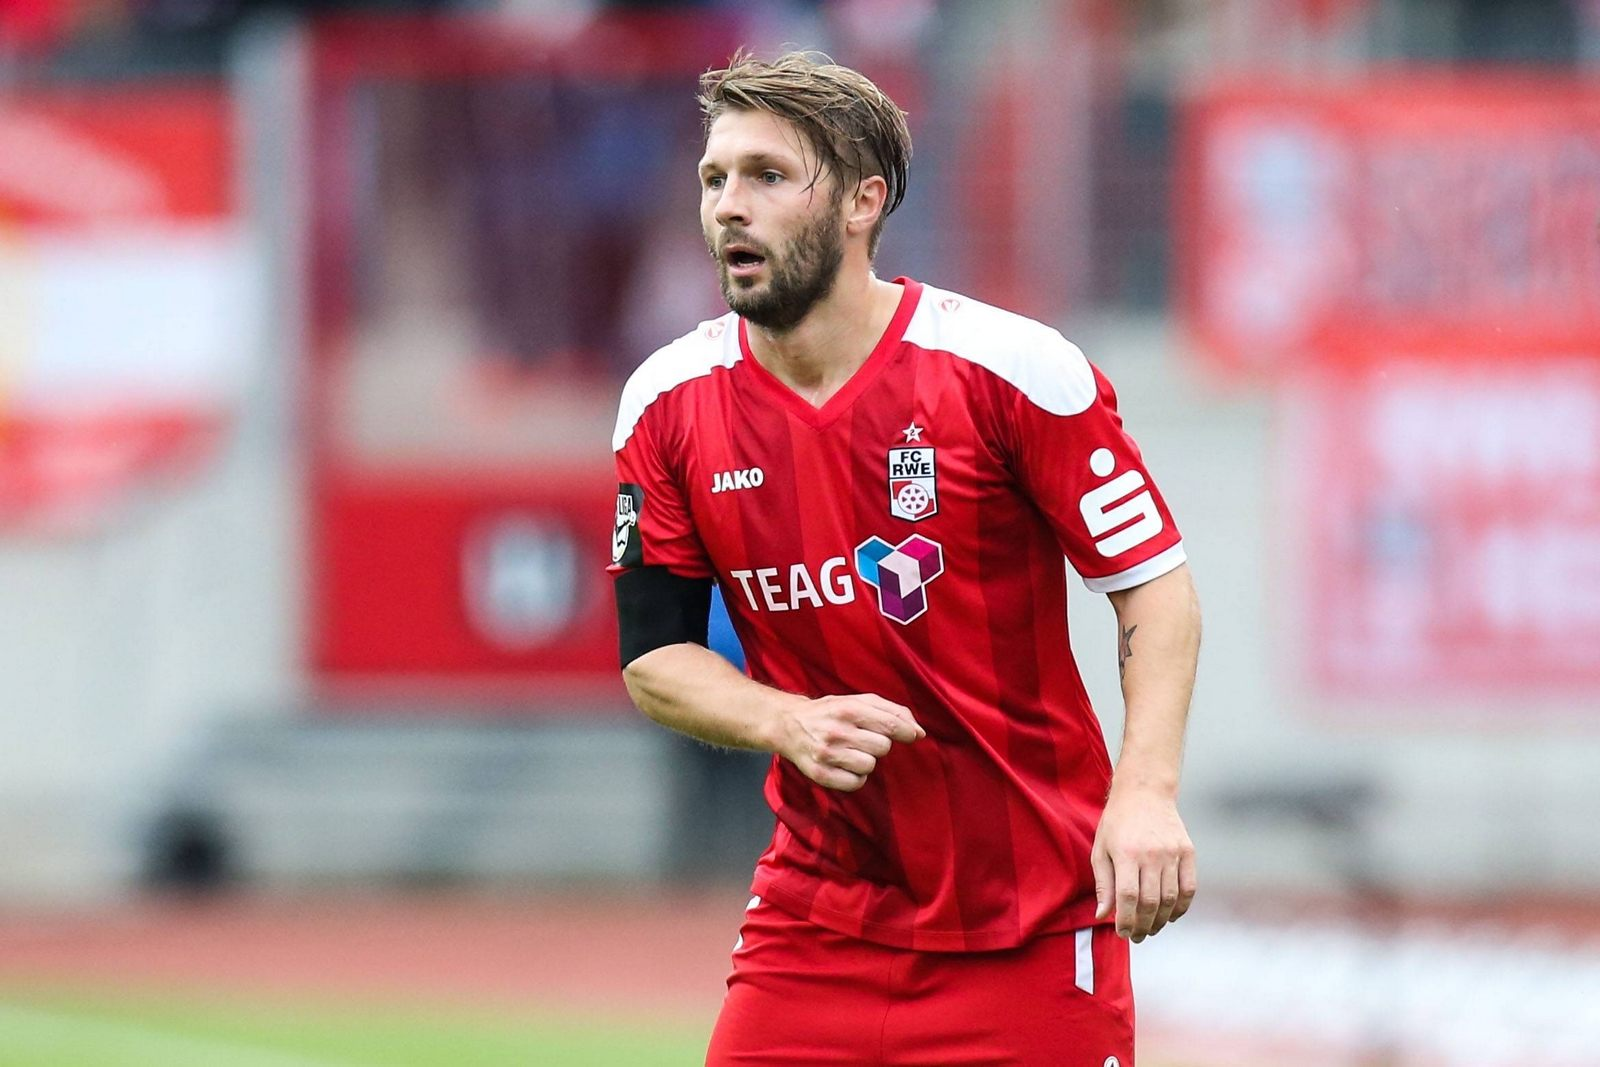 Sebastian Tyrala (FC Rot Weiss Erfurt) - 3. Liga Saison 2016-2017 Punktspiel FC Rot Weiss Erfurt vs. 1. FC Magdeburg im Steigerwaldstadion in Erfurt - Einzelbild,Aktion,Deutschland, Fussball, Mann, Maenner,15.10.2016 Sebastian Tyrala FC Red White Erfurt 3 League Season 2016 2017 Point game FC Red White Erfurt vs 1 FC Magdeburg in Steigerwald stadium in Erfurt Single Action shot Germany Football Man Men 15 10 2016